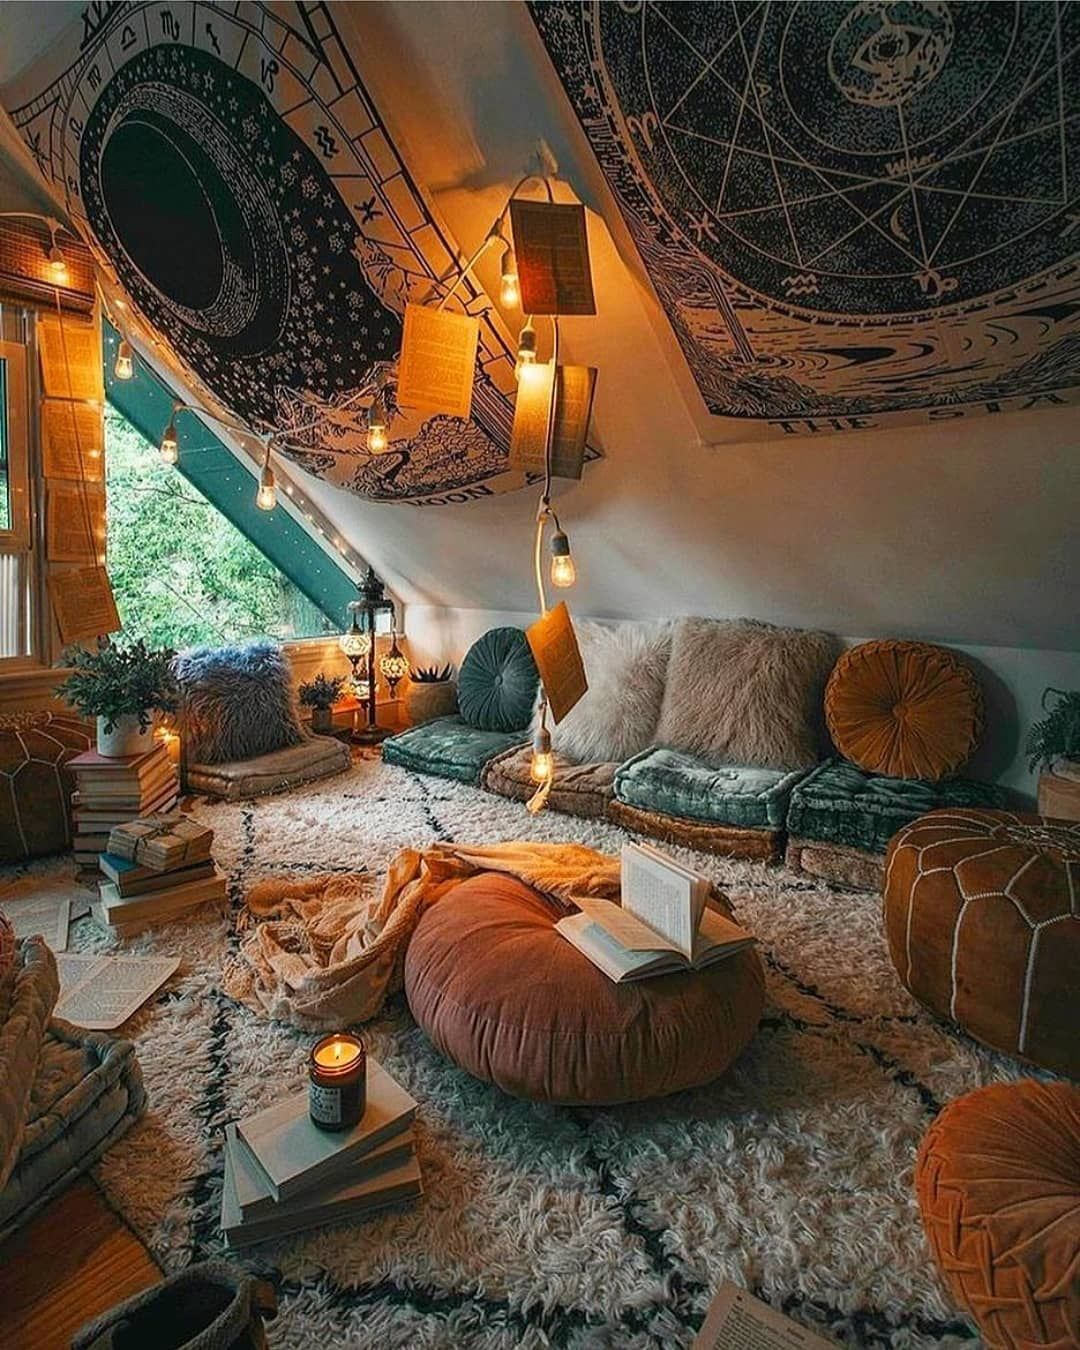 Home Decor Design On Instagram Describe This Place In One Word